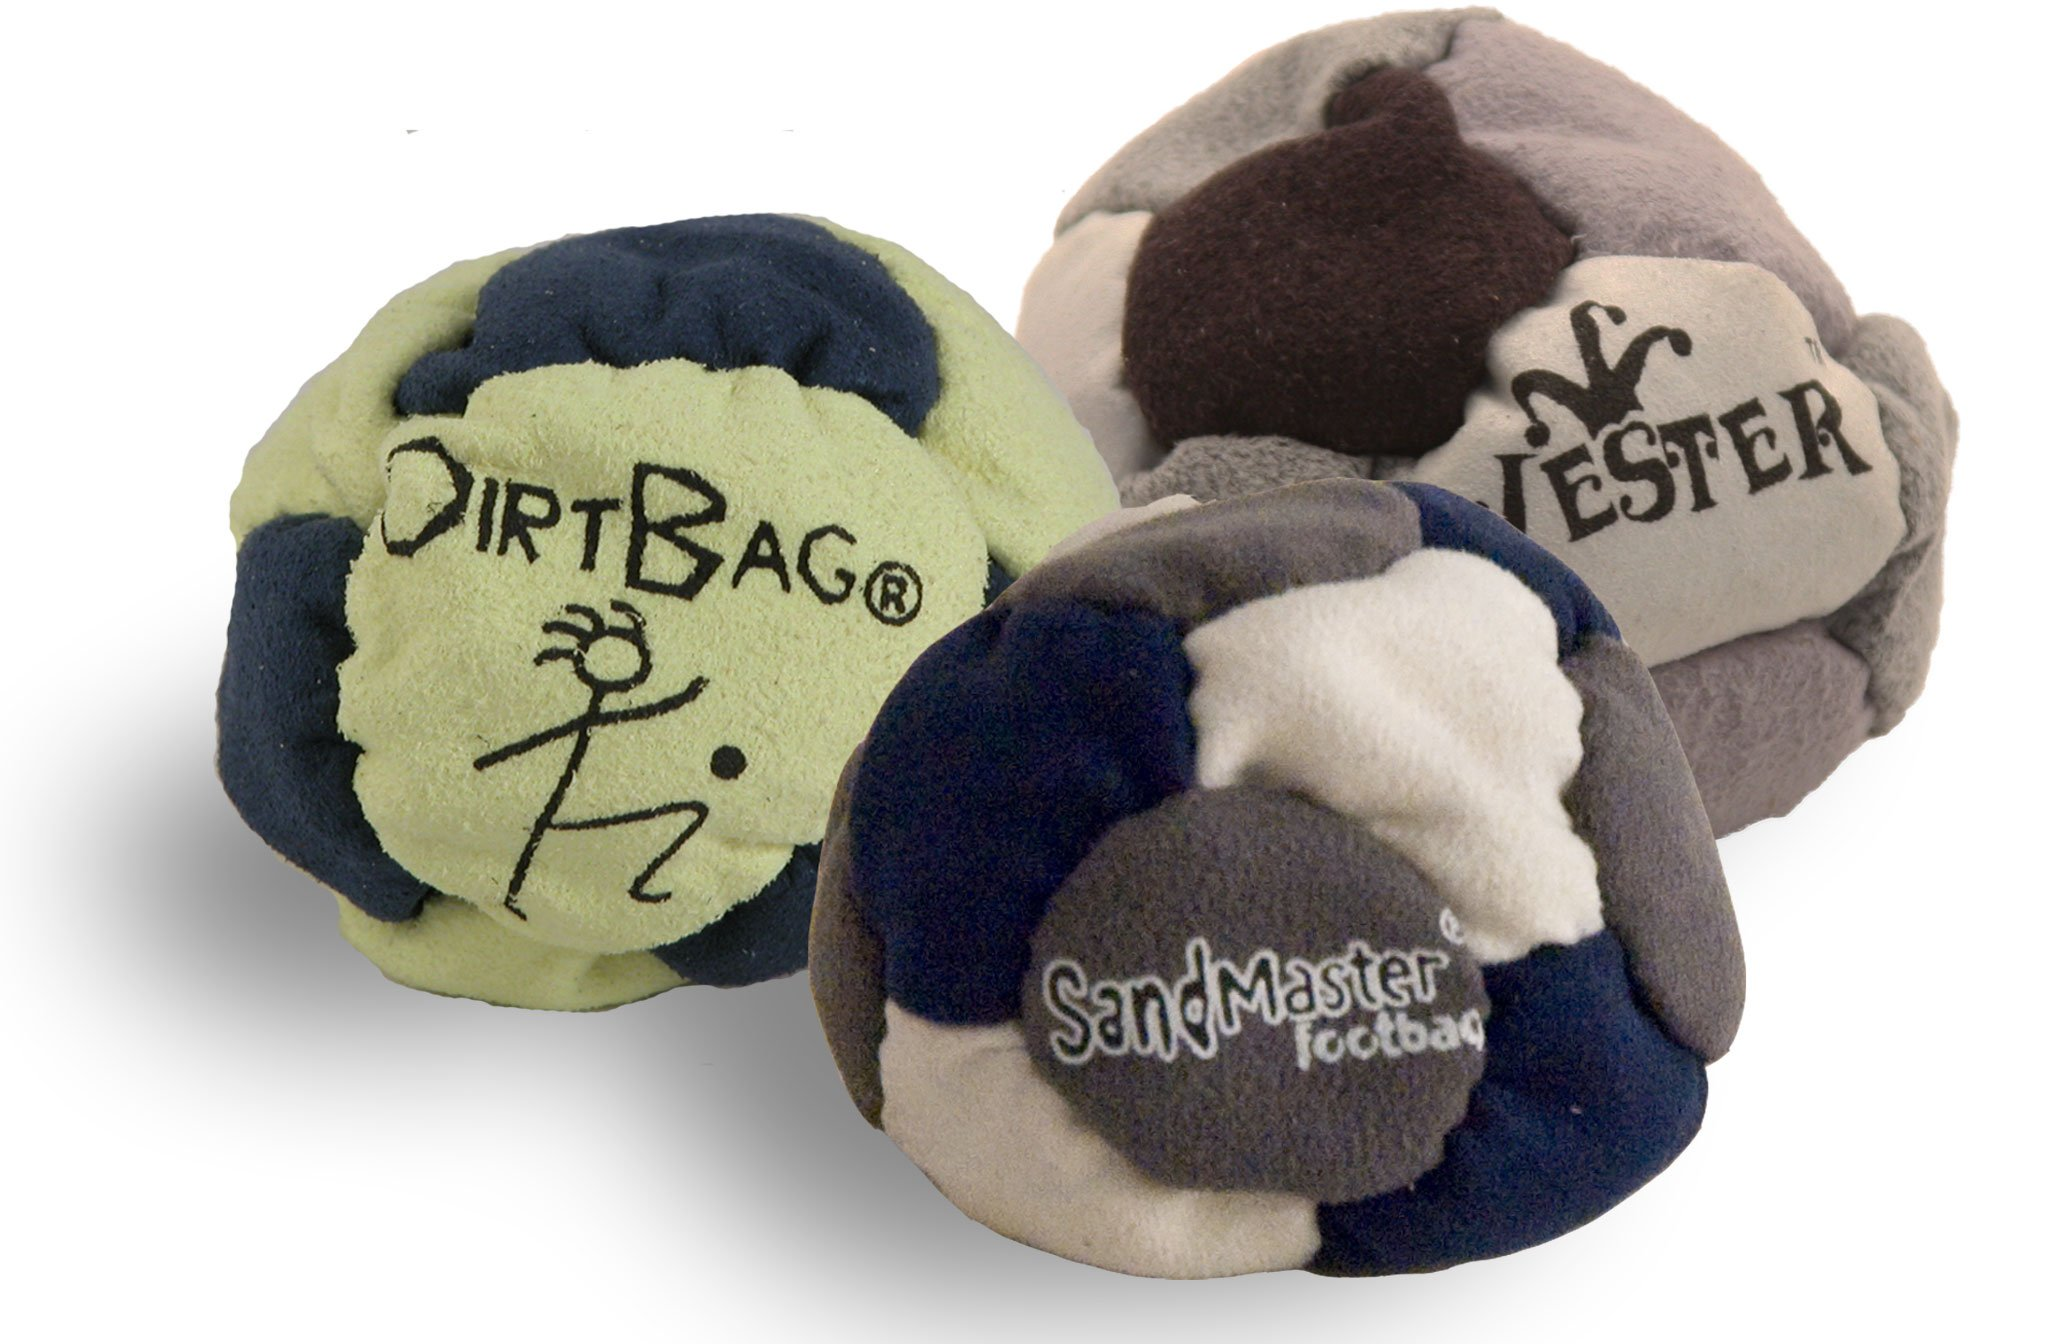 Best Footbags 3 Pack - Set of Three Footbag Favorites (Hacky Sacks) Assorted Colors by The Wright Life